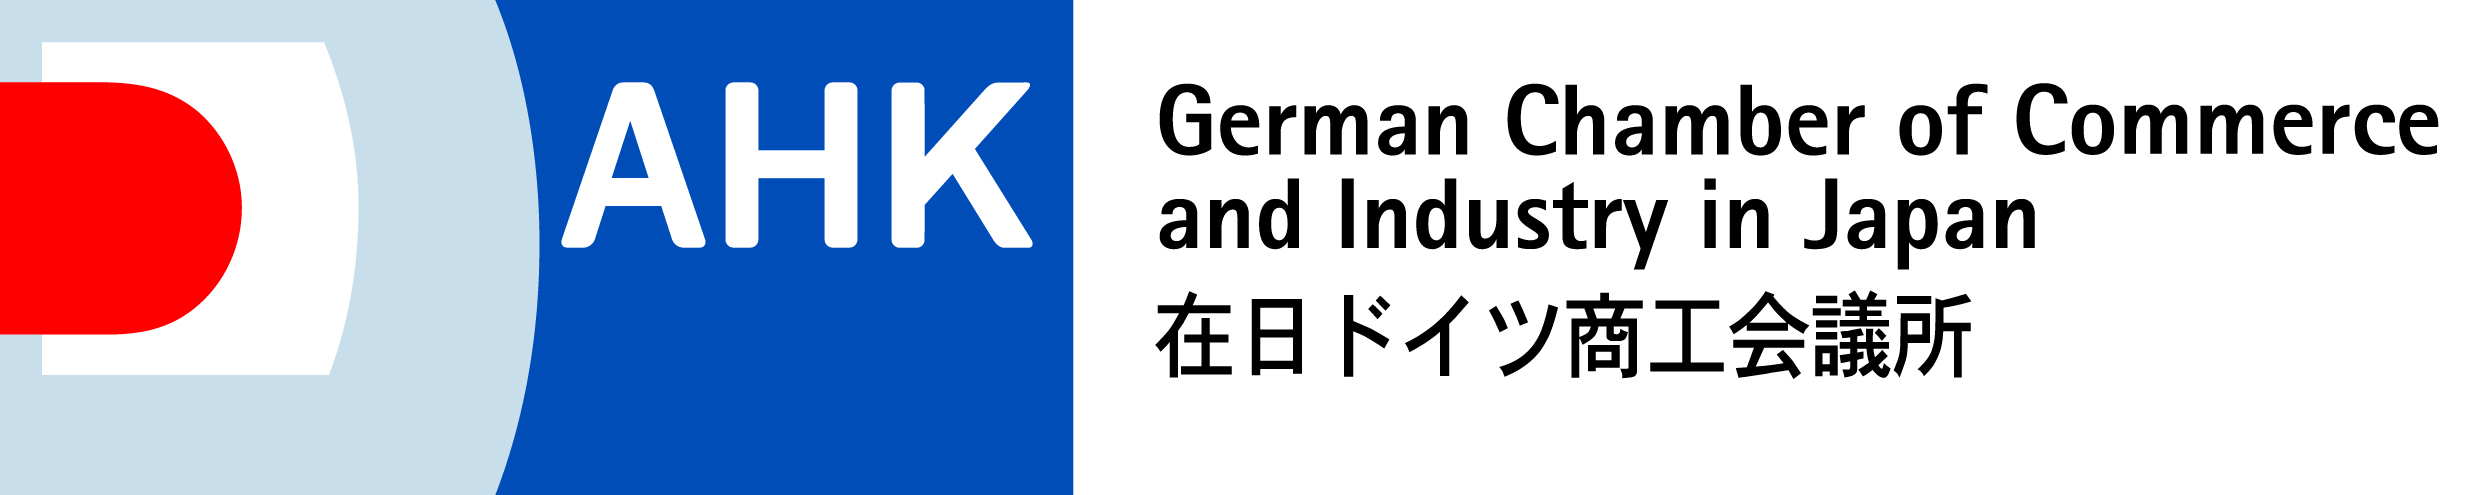 AHK-EU-Japan-EPA-Forum-trade-investment-M-and-A-Europe